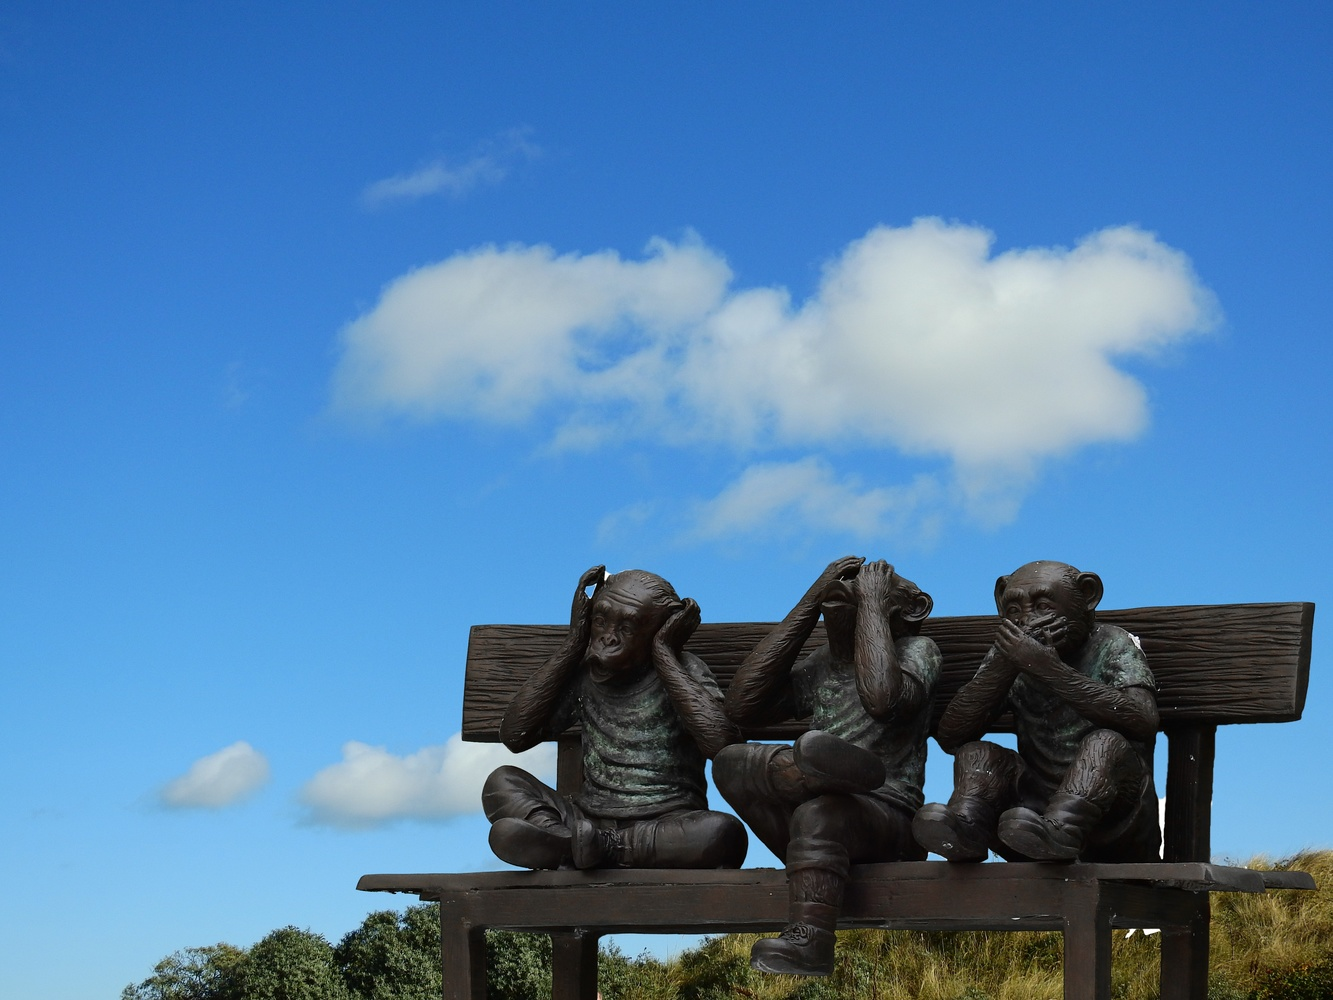 a bronze sculpture of the three evils monkeys